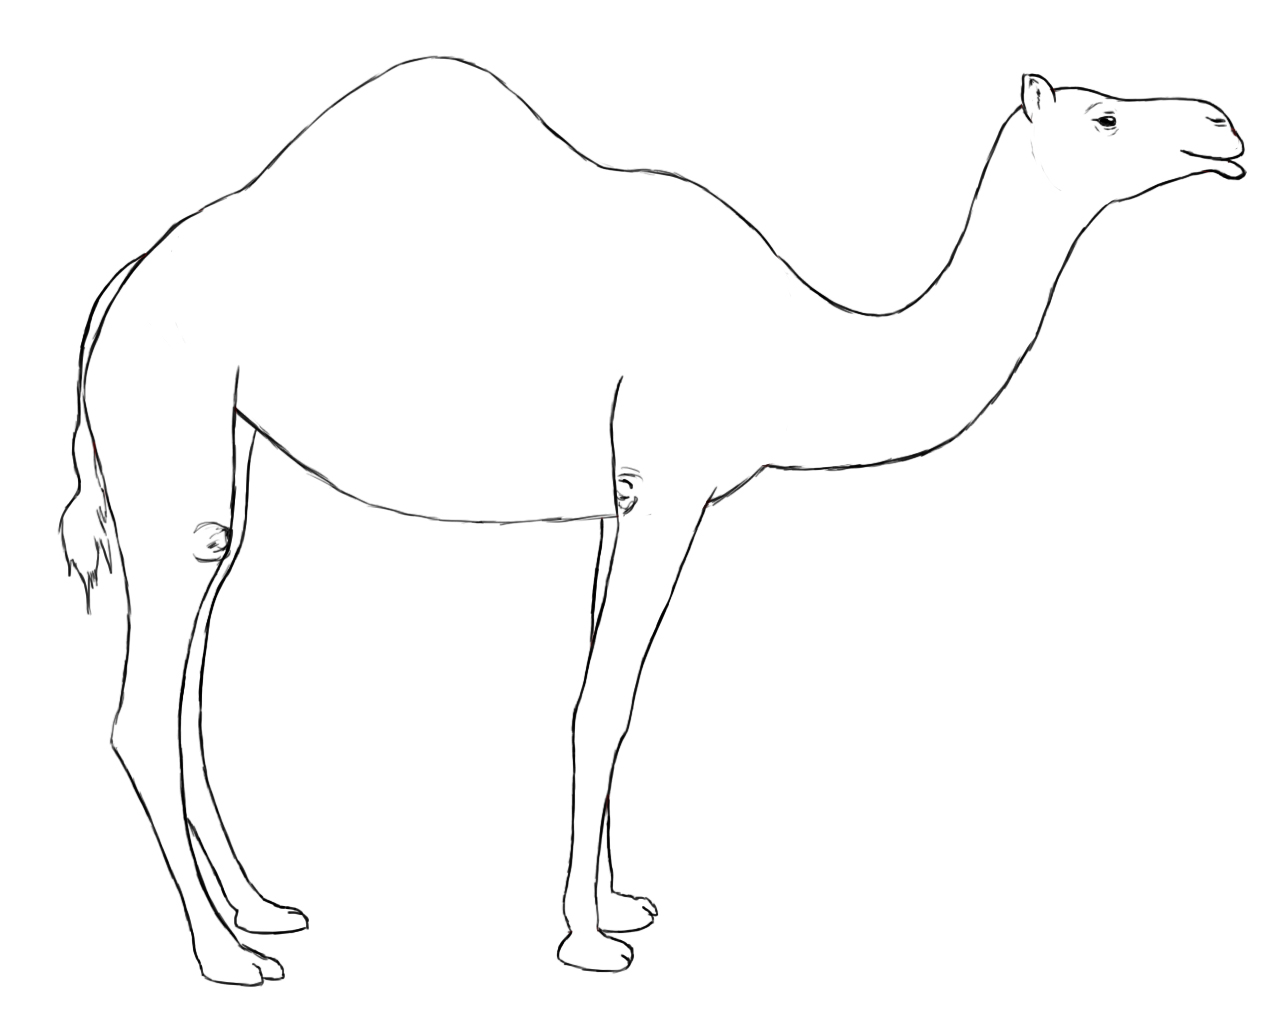 Drawn camels Camel?? Drawing  A To